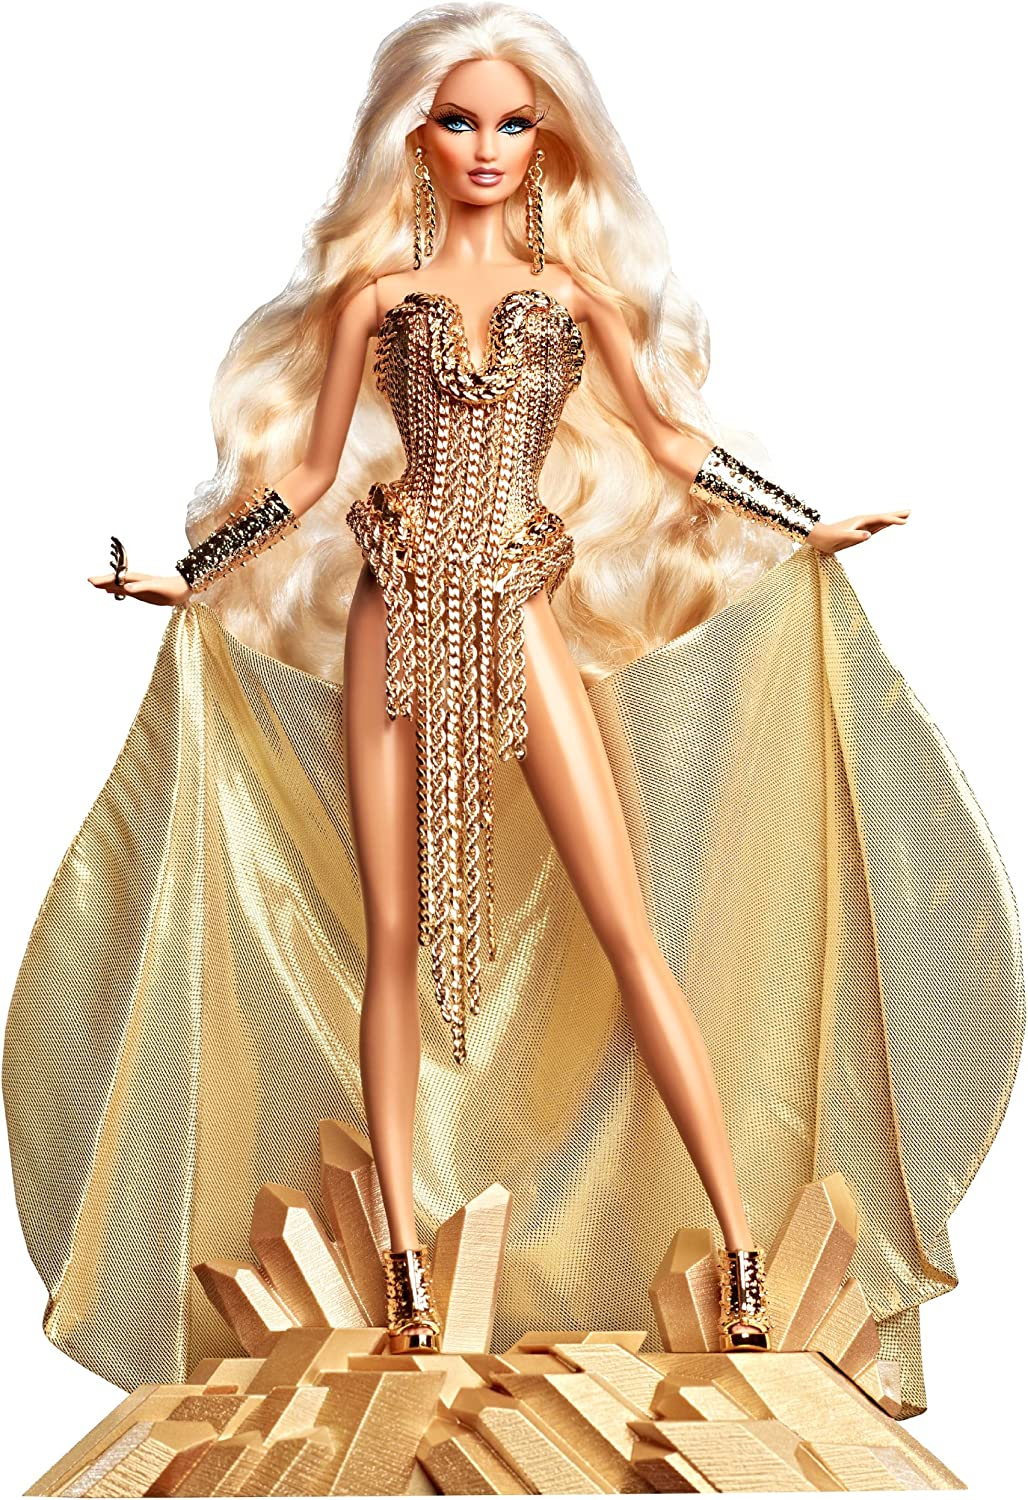 Amazon Com Barbie Collector The Blonds Blond Gold Barbie Doll Toys Games